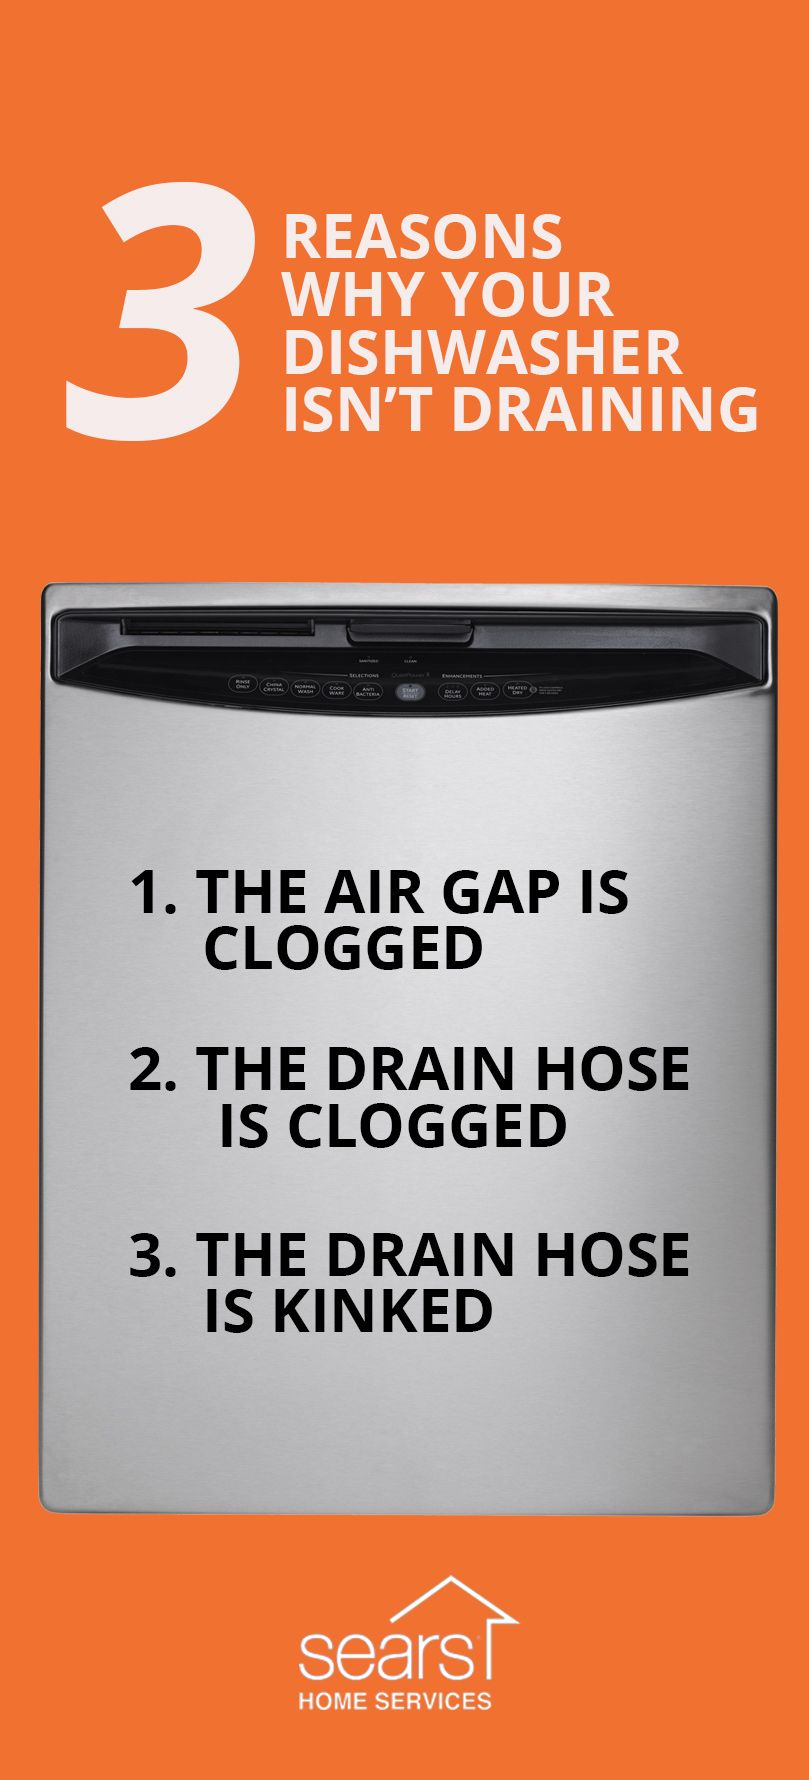 Is your dishwasher not draining? There are three major